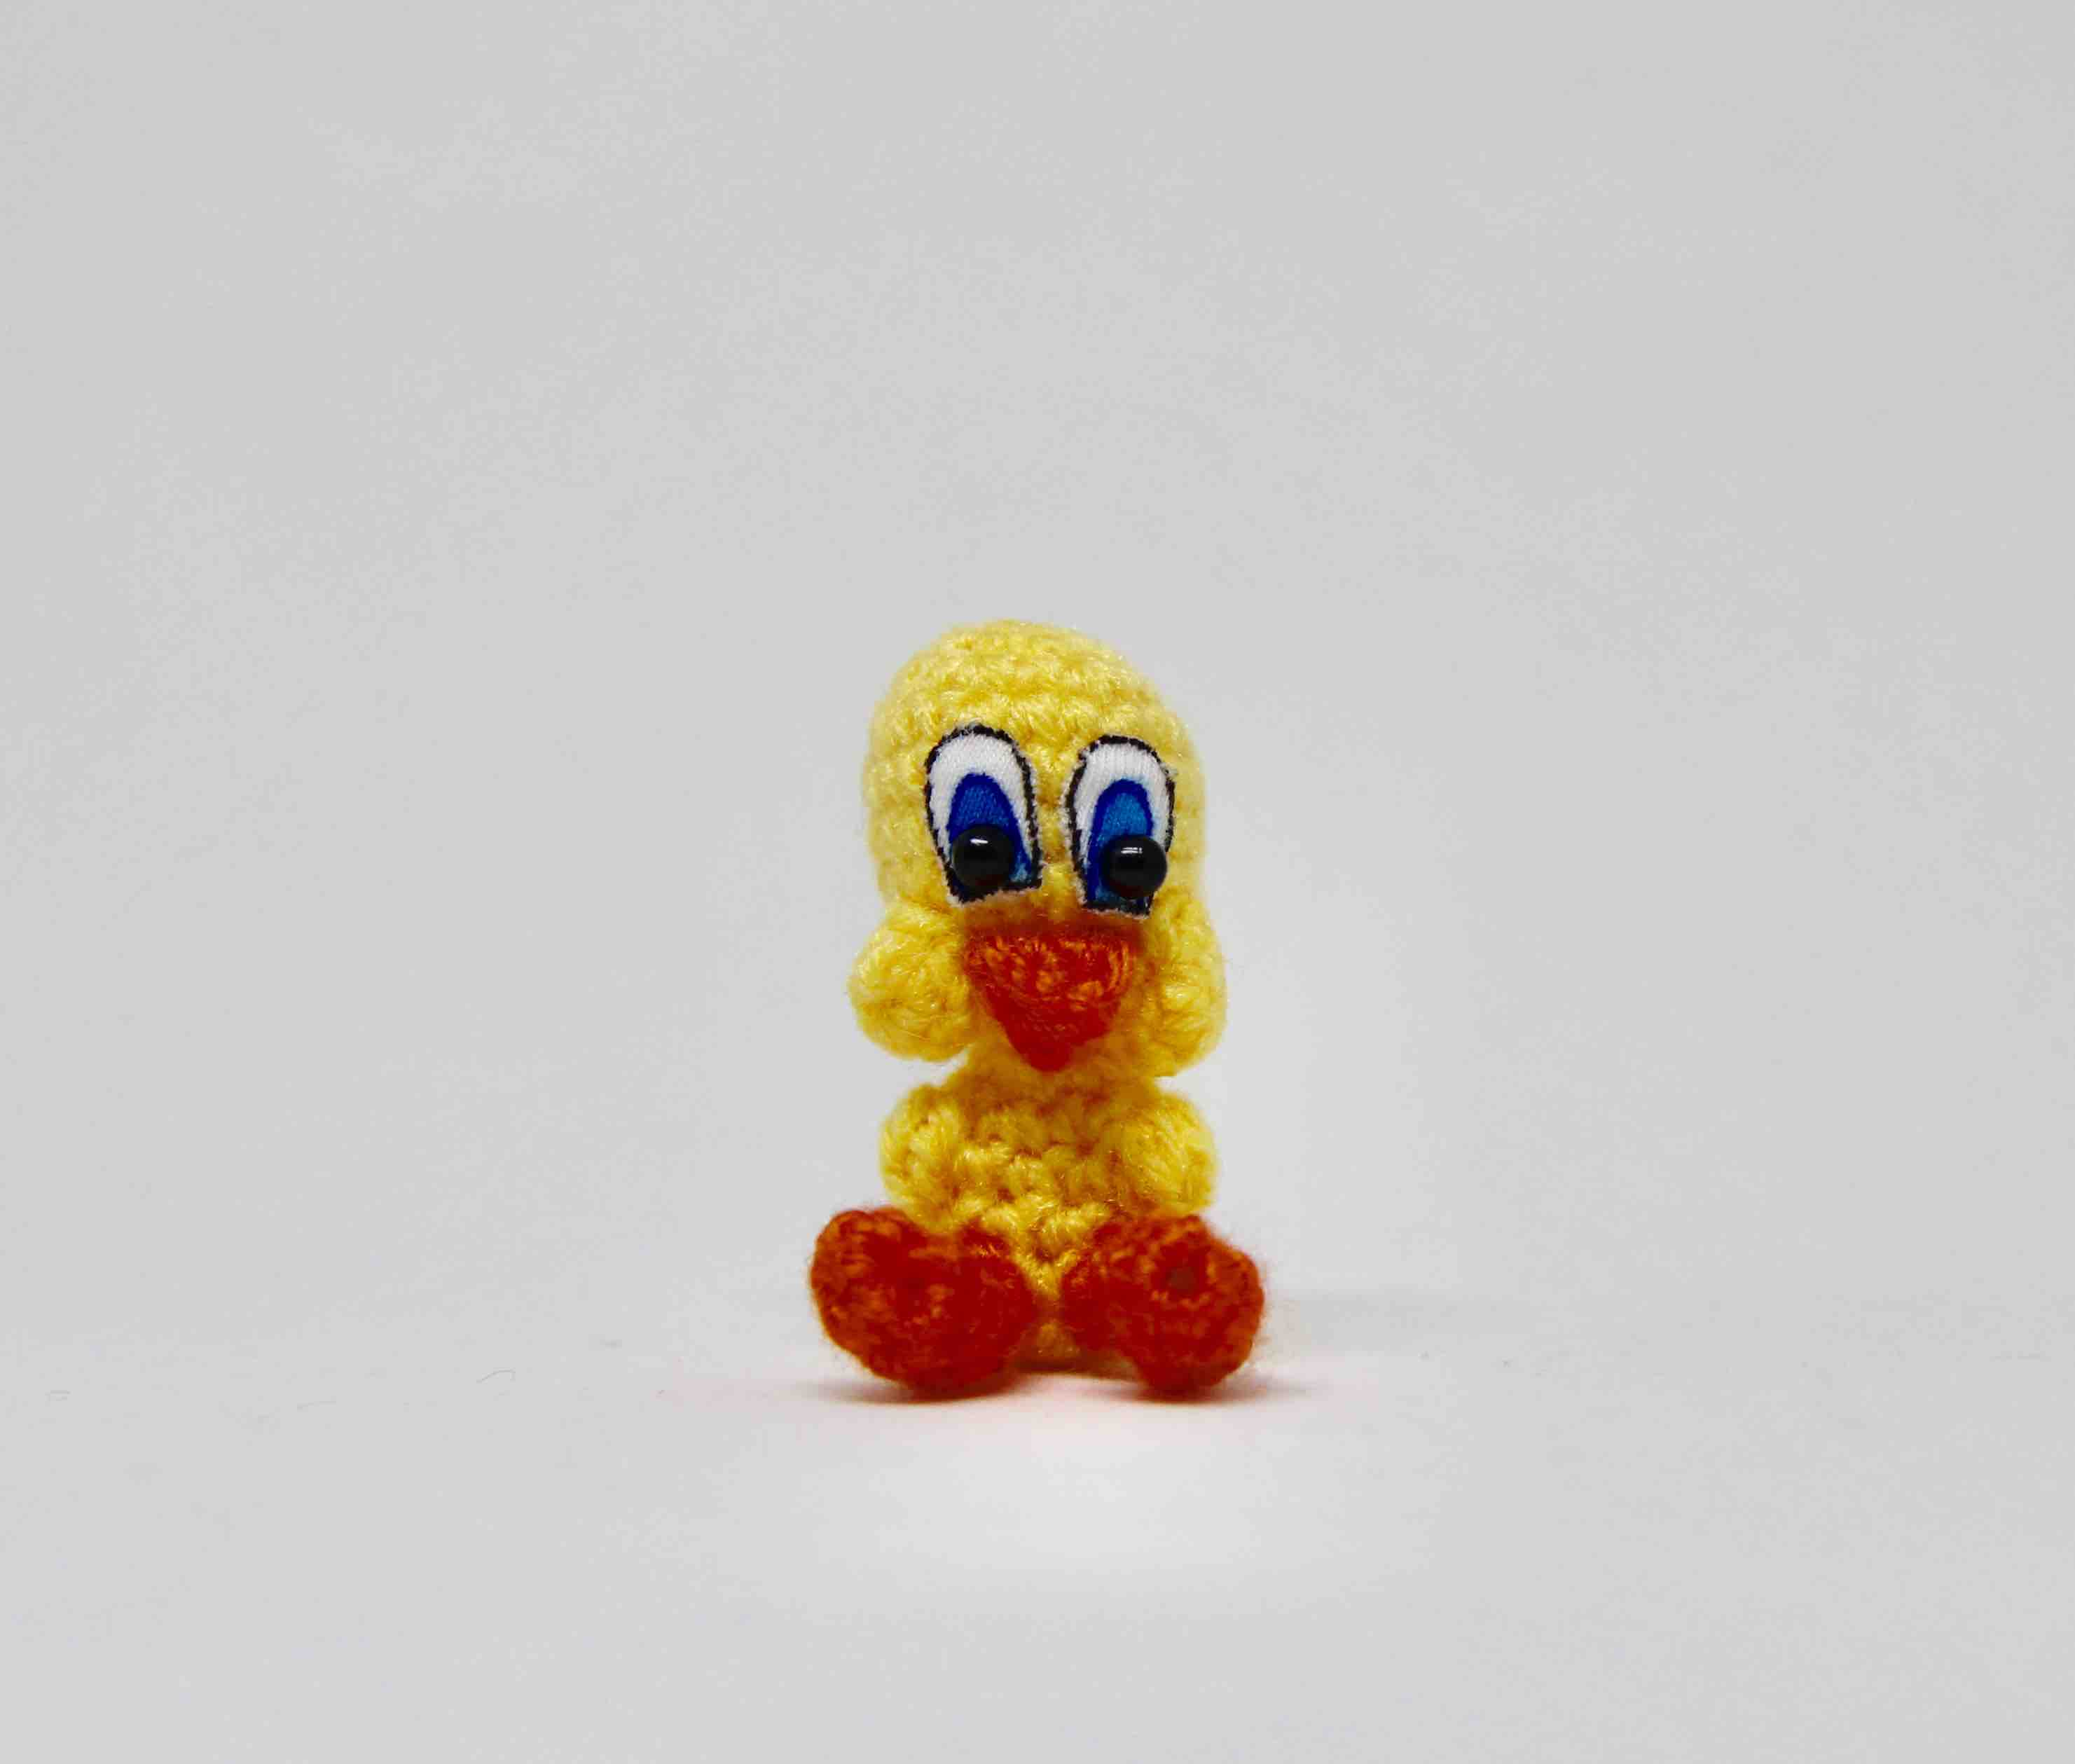 Tweety Bird | Pokemon crochet pattern, Tweety, Crochet patterns | 2518x2962